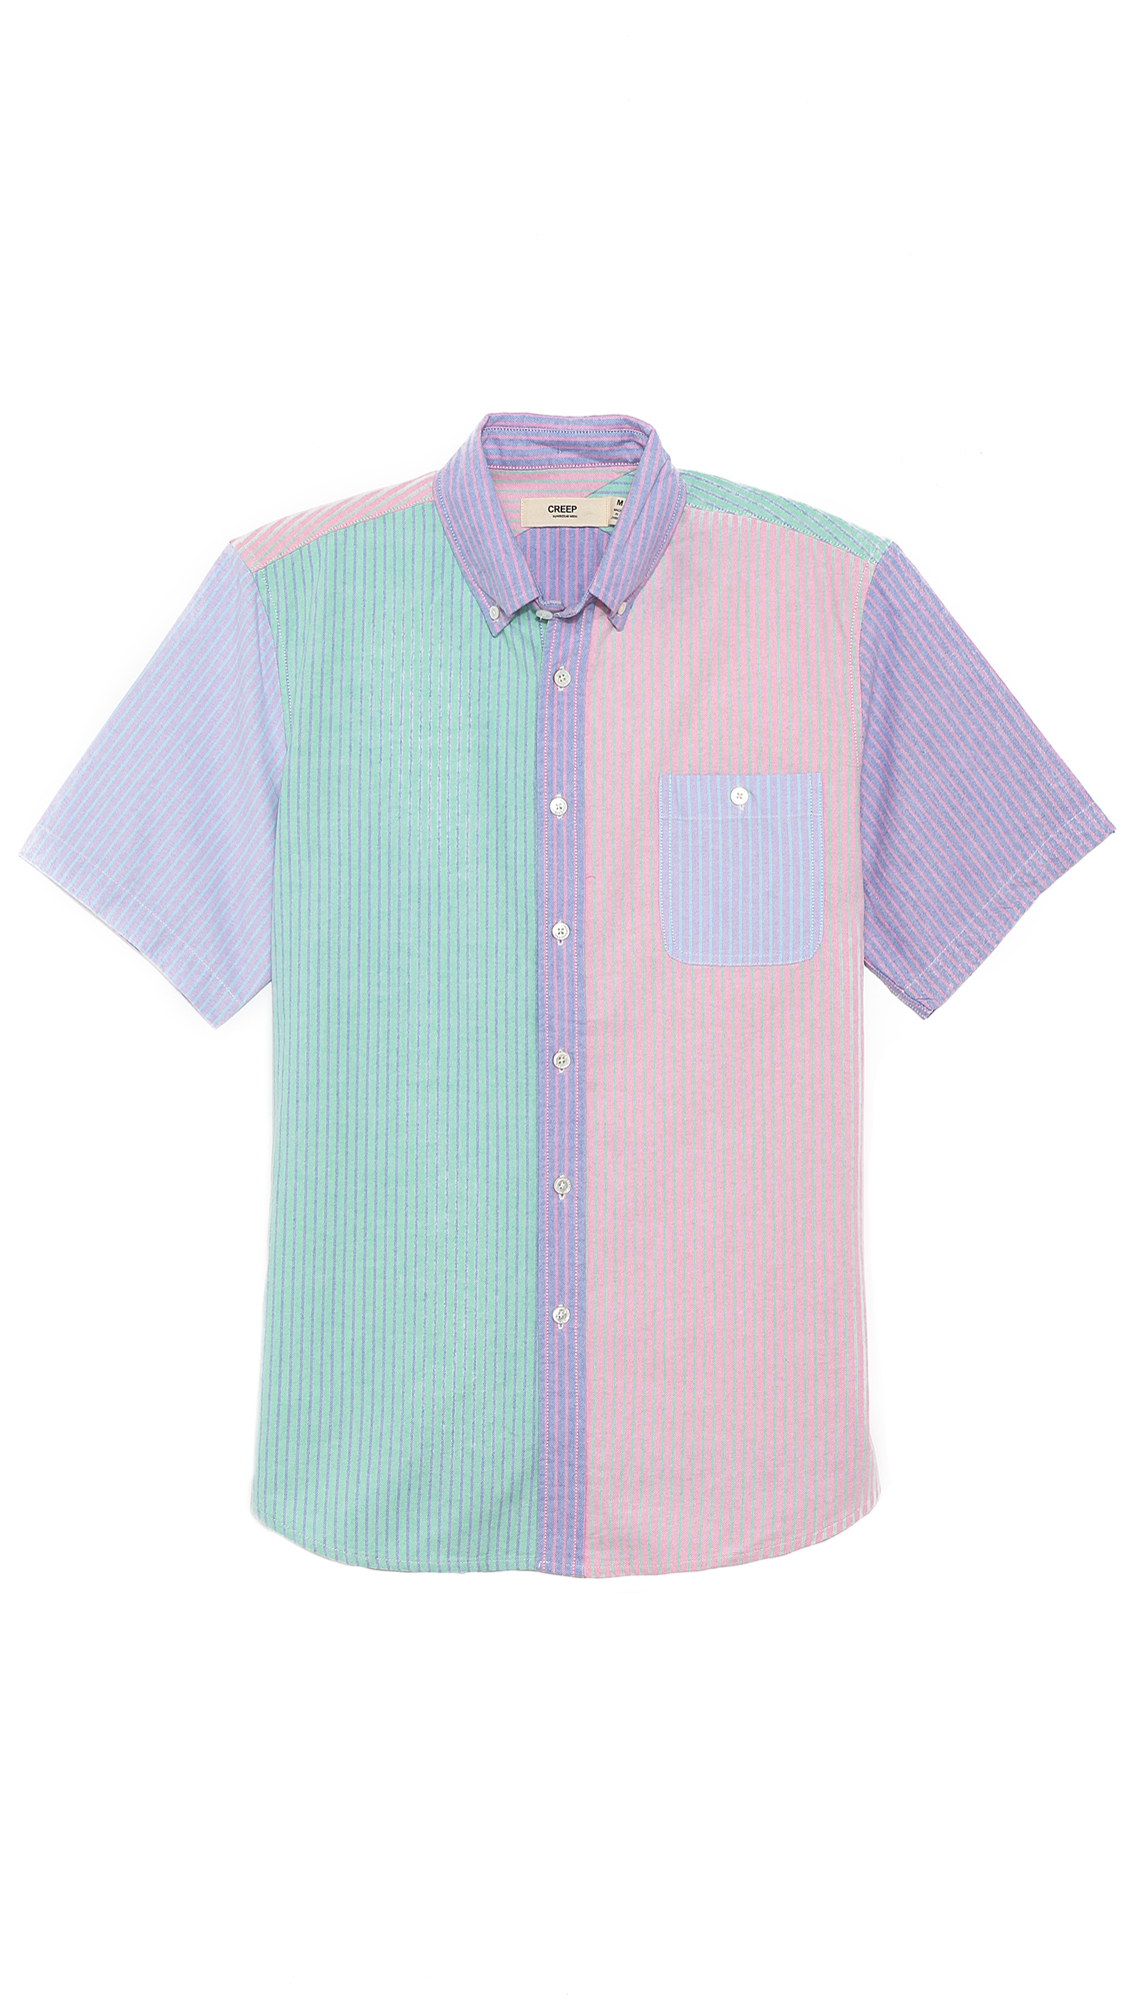 Creep Short Sleeve Button Down Shirt In Multicolor For Men